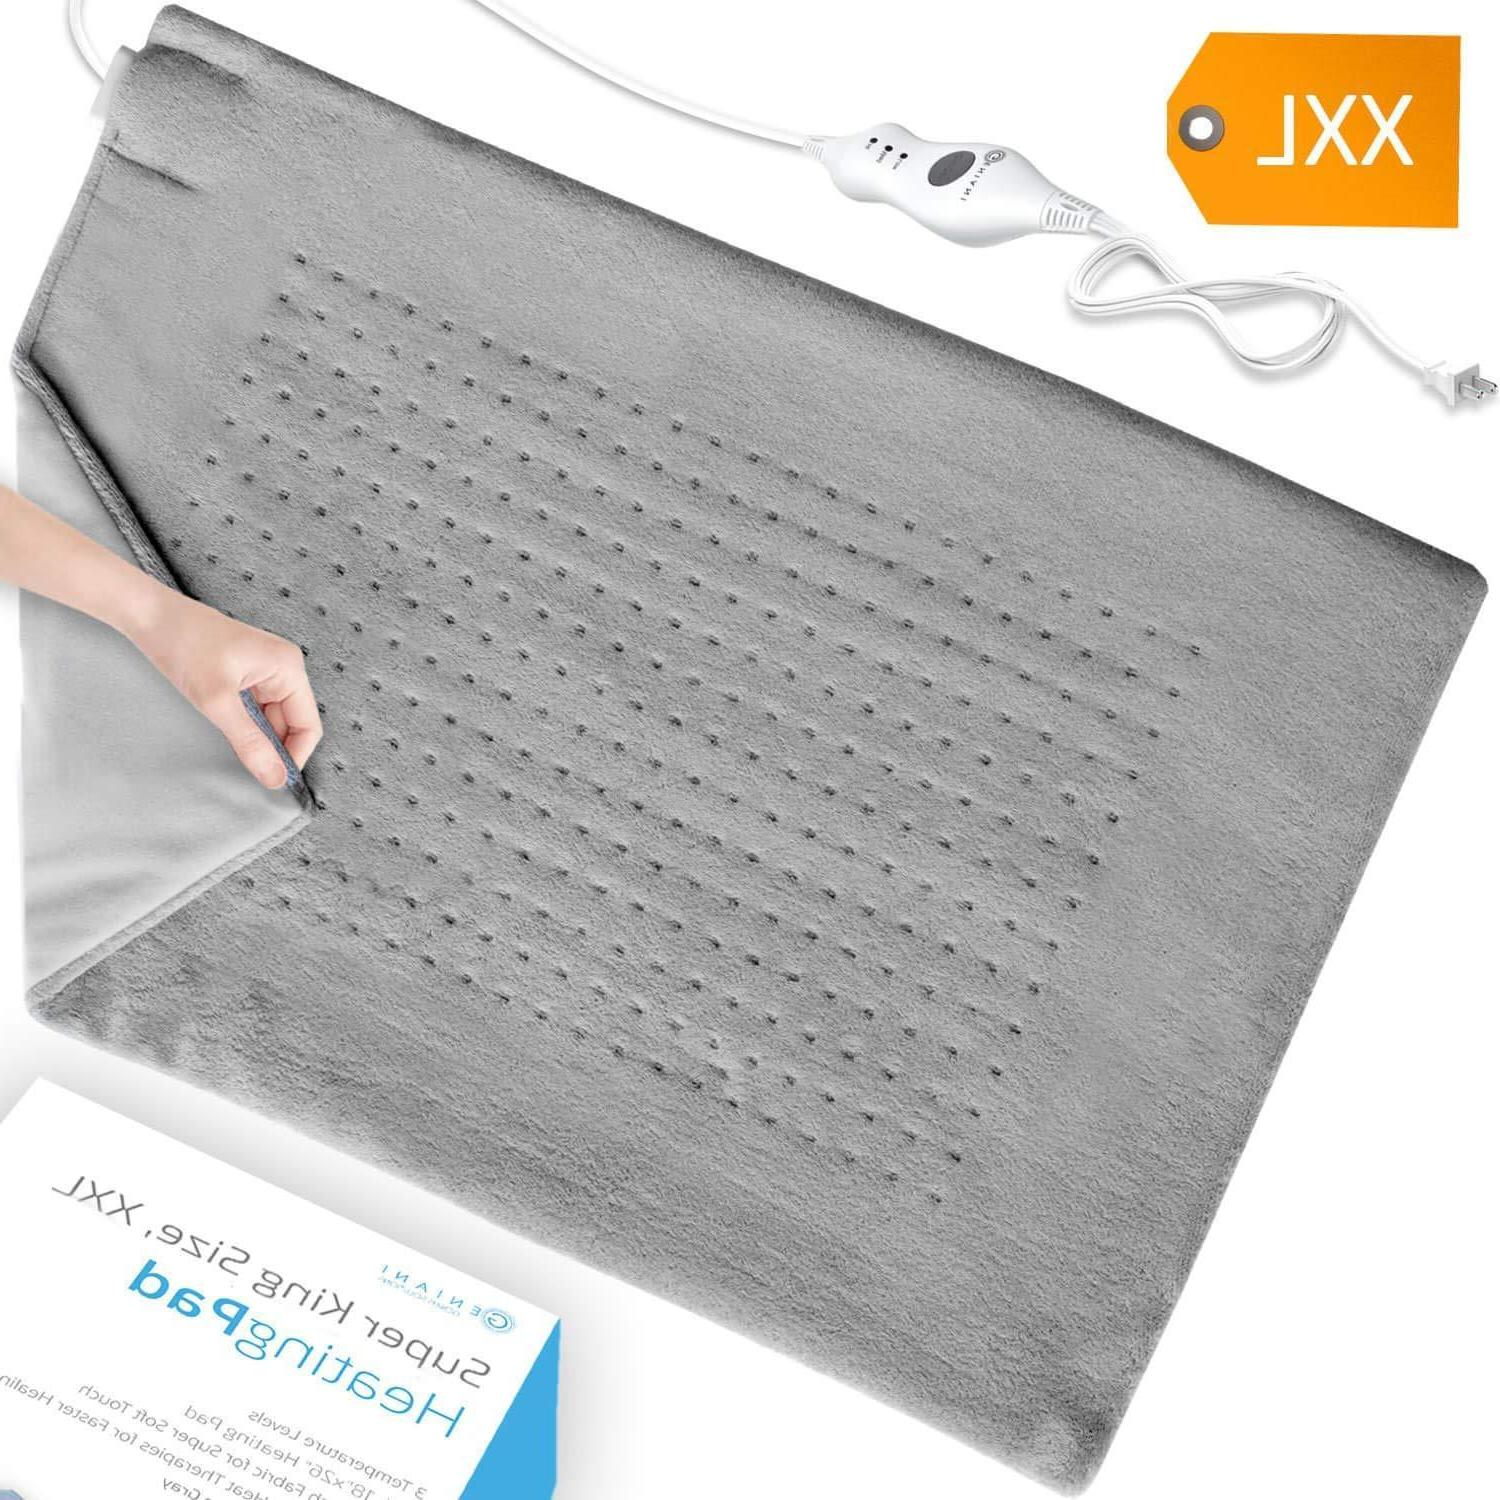 XXL Heating Pad - Electric Heating Pad for Moist and Dry Hea